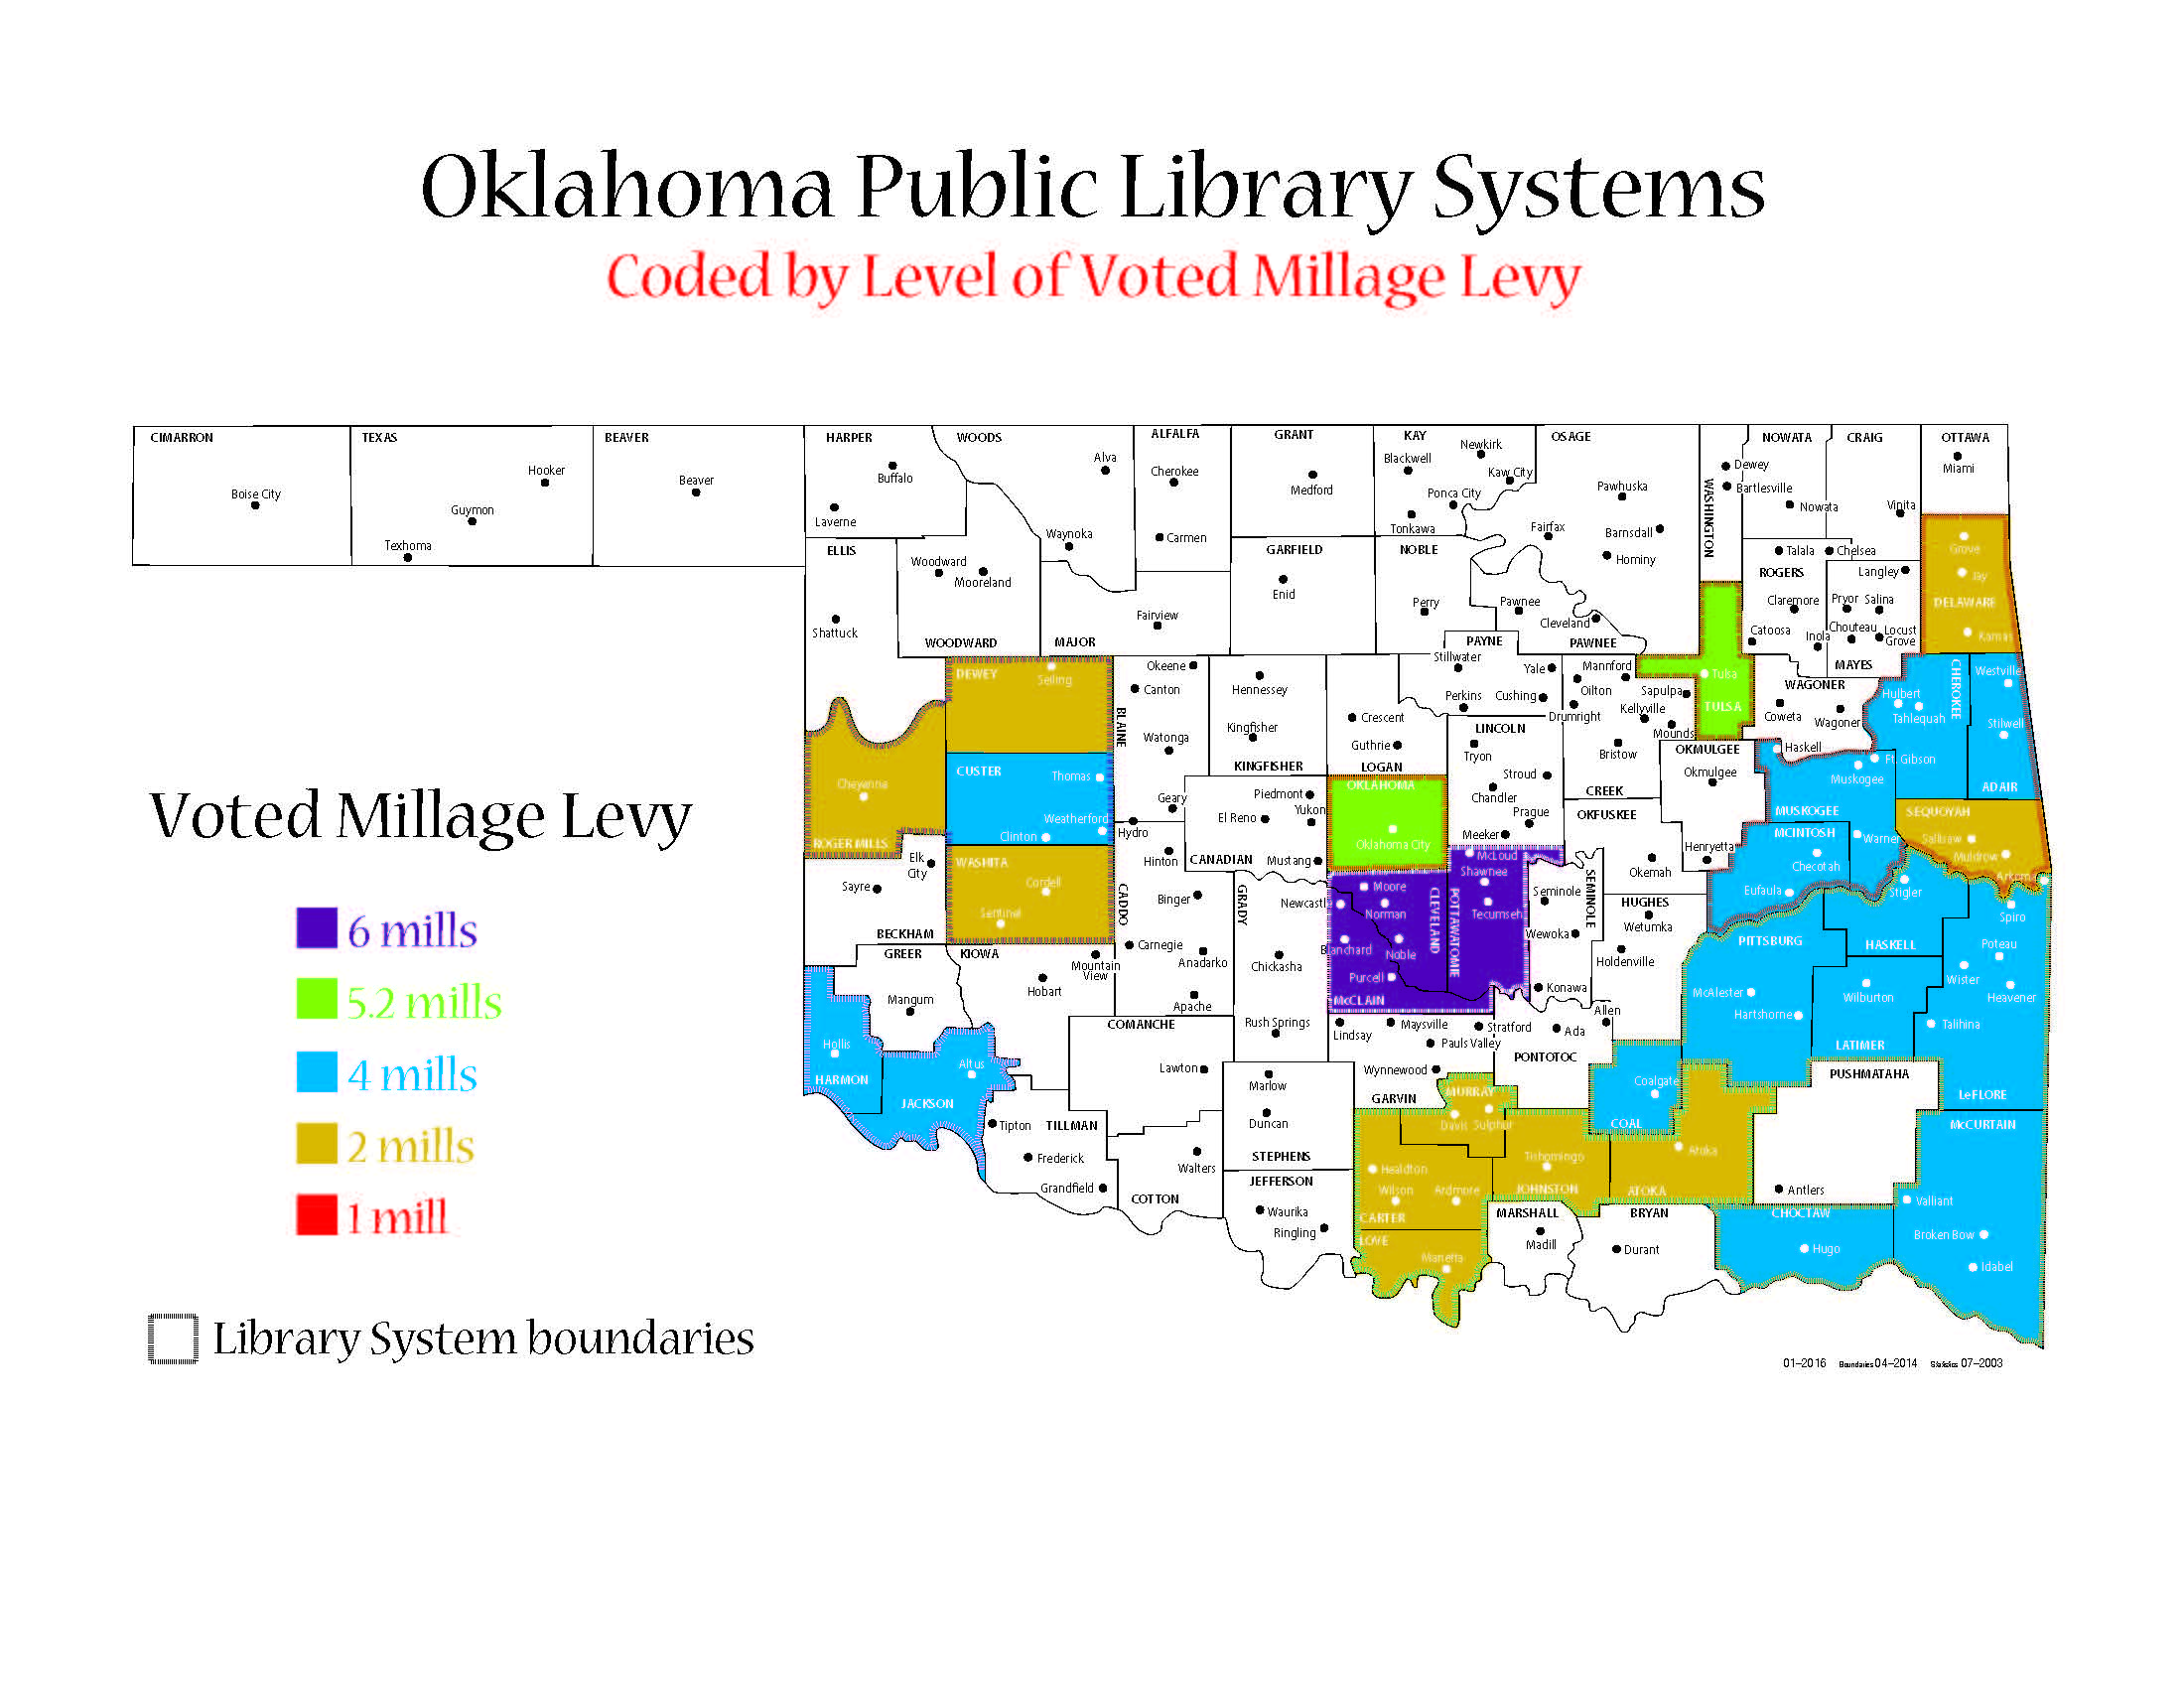 Oklahoma Public Libraries Coded by Millage